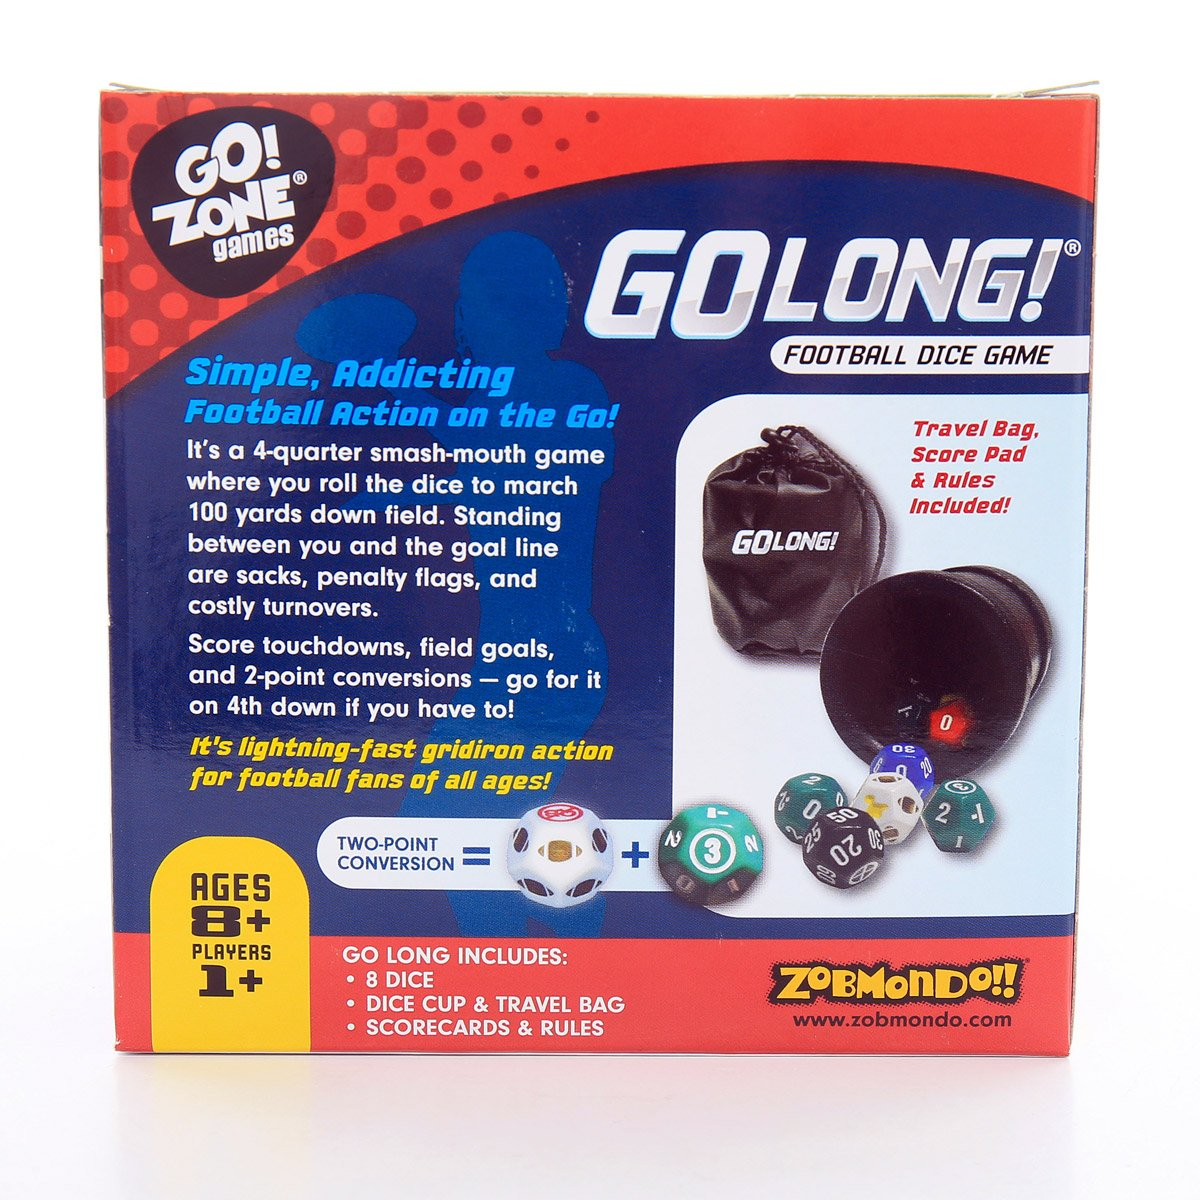 Zobmondo!! Award winning Dice Game, GoLong! A Football Dice Game - Super Fun Game - Portable, Playing Dice : Perfect For - Travel, Home, Parties, Gifts, Stocking Stuffers by Zobmondo!! (Image #2)